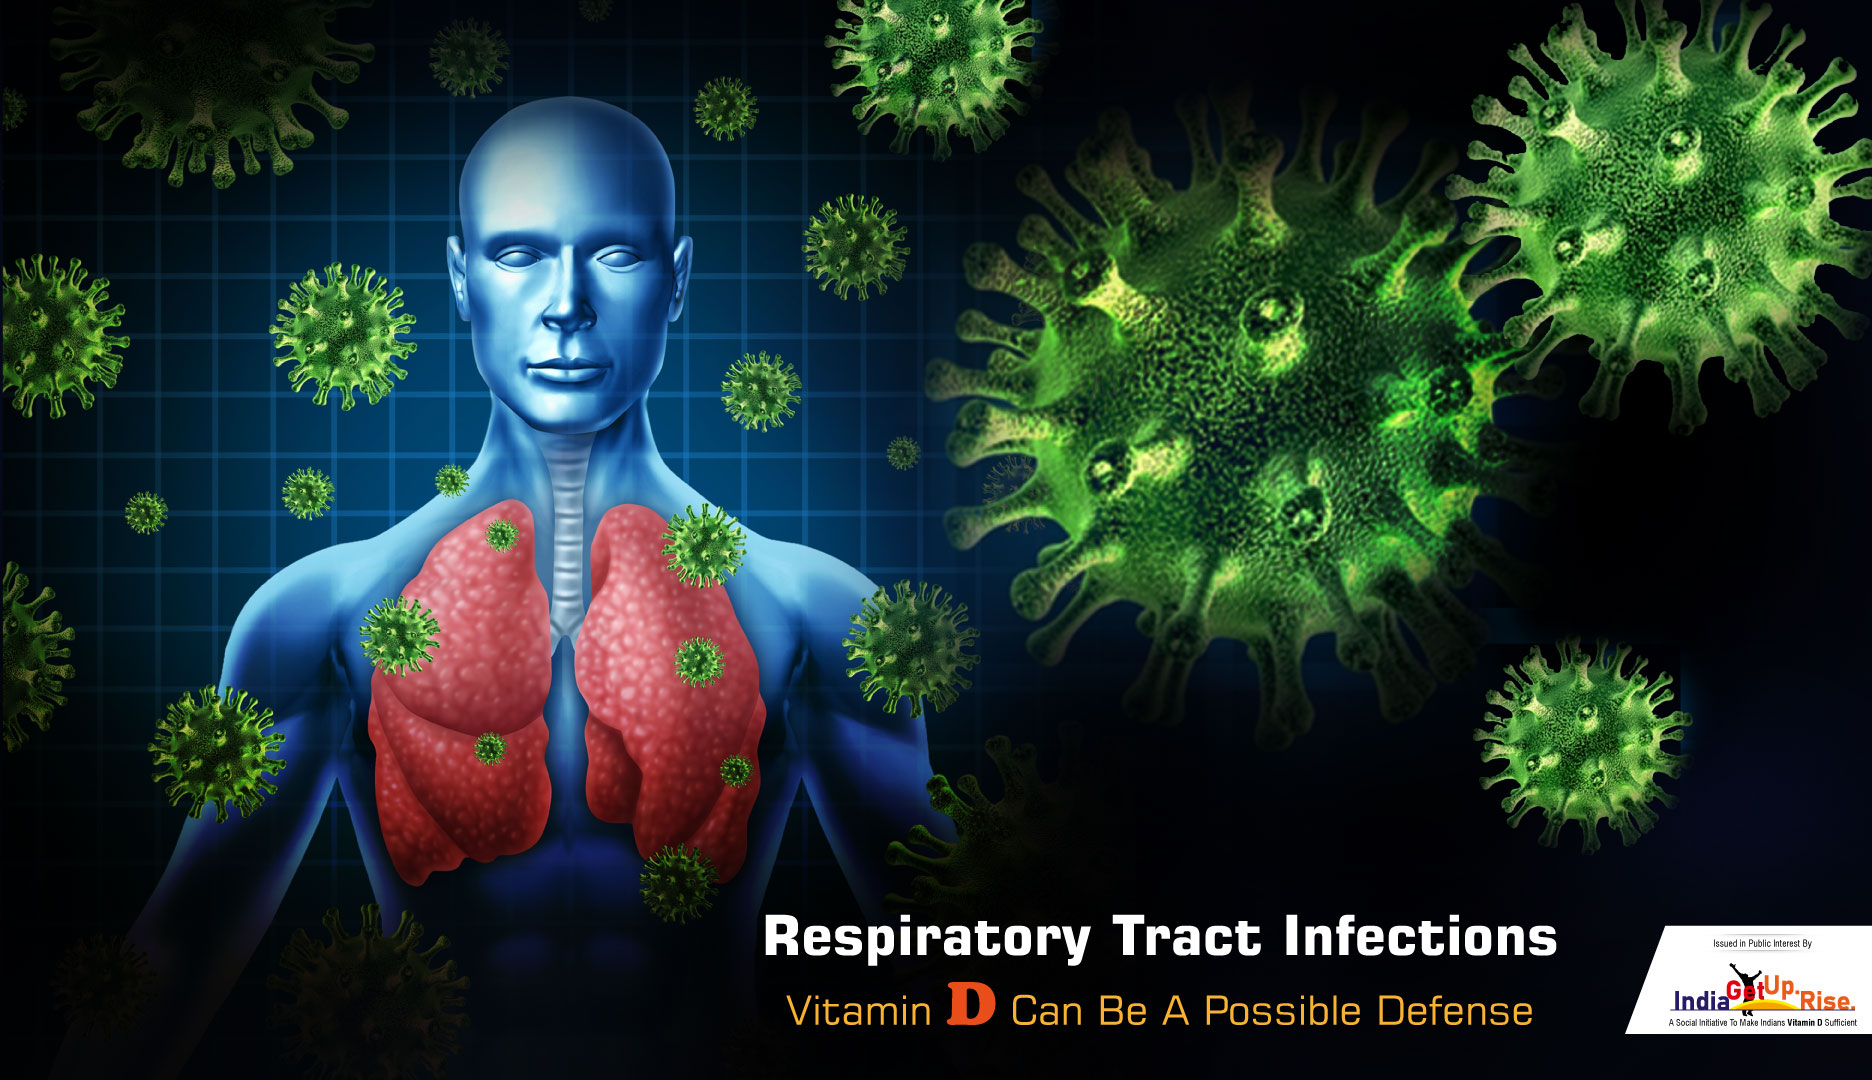 Vitamin D Deficiency and respiratory tract infection incidences